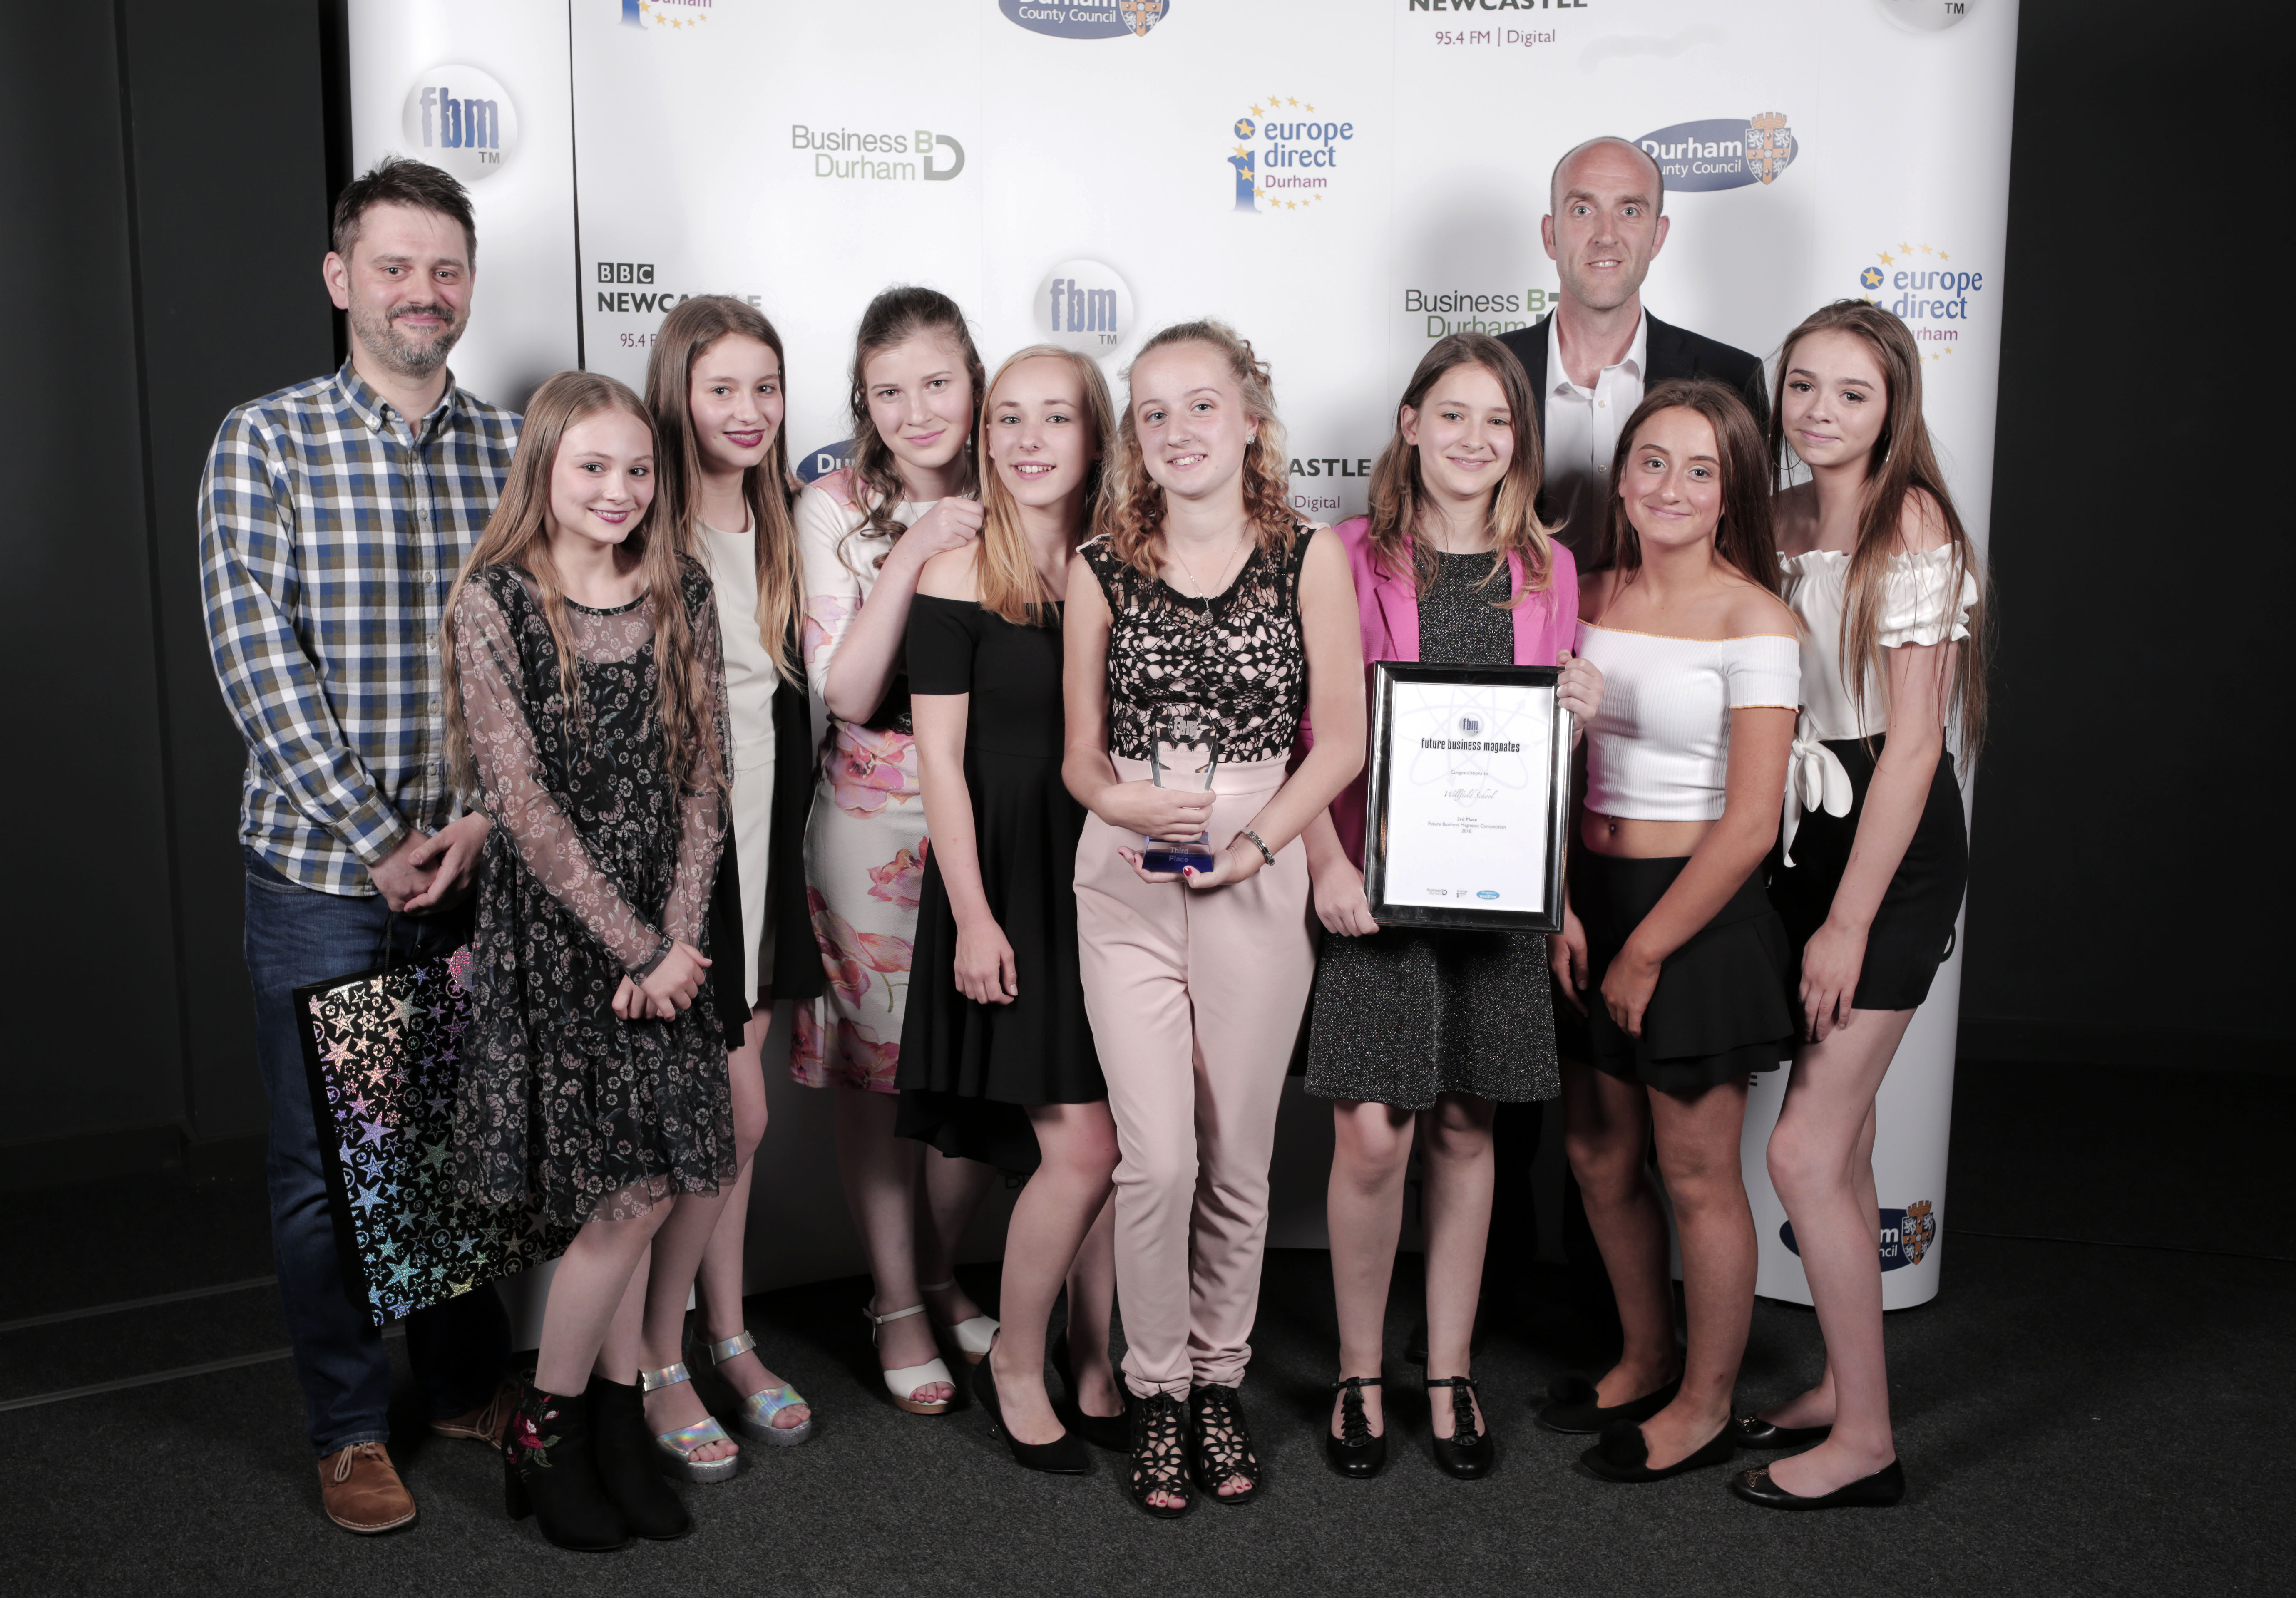 Future Business Magnates – 3rd Place for Wellfield